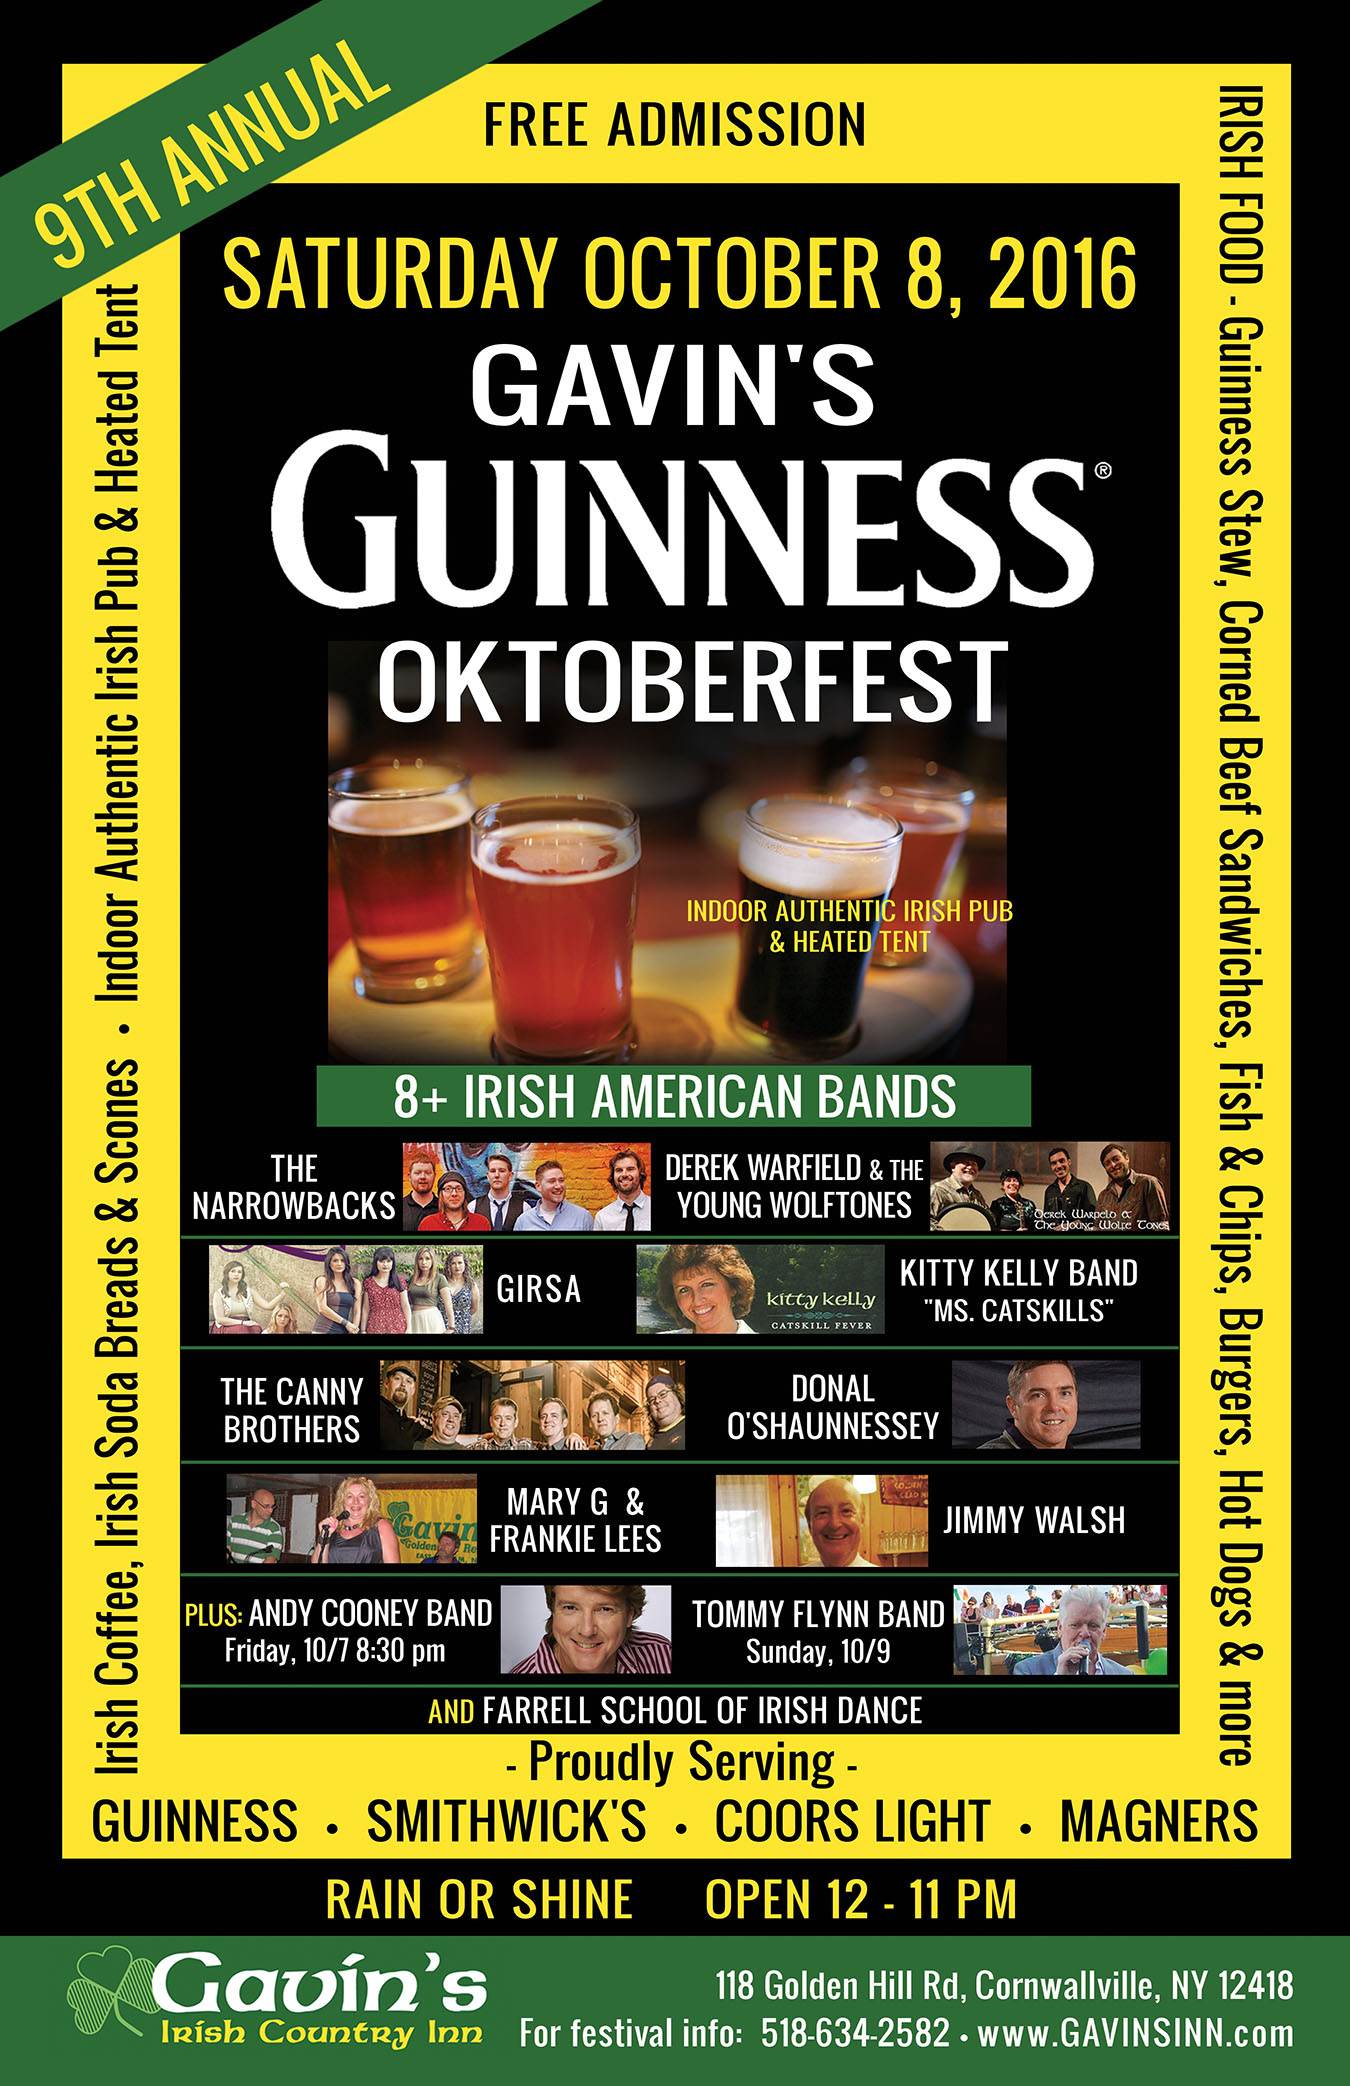 9th Annual Guinness Oktoberfest